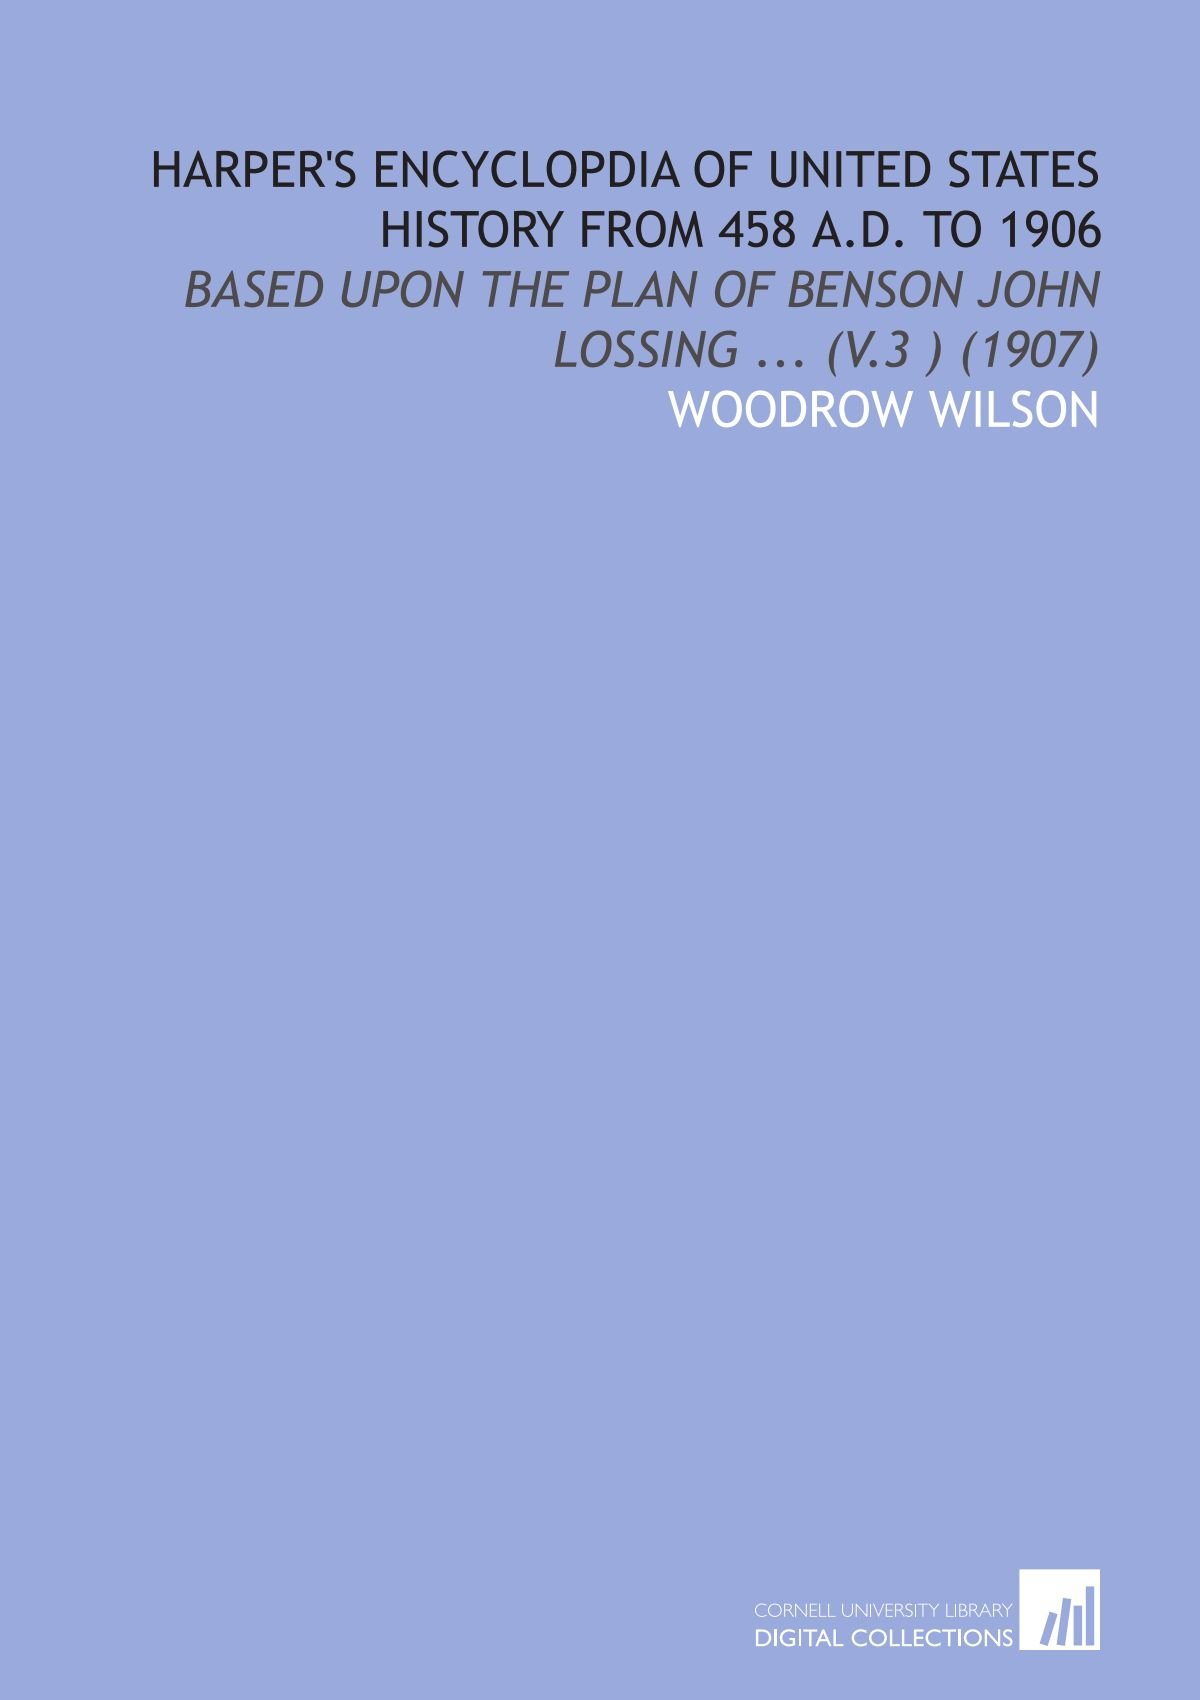 Harper's Encyclopdia of United States History From 458 a.D. To 1906: Based Upon the Plan of Benson John Lossing ... (V.3 ) (1907) pdf